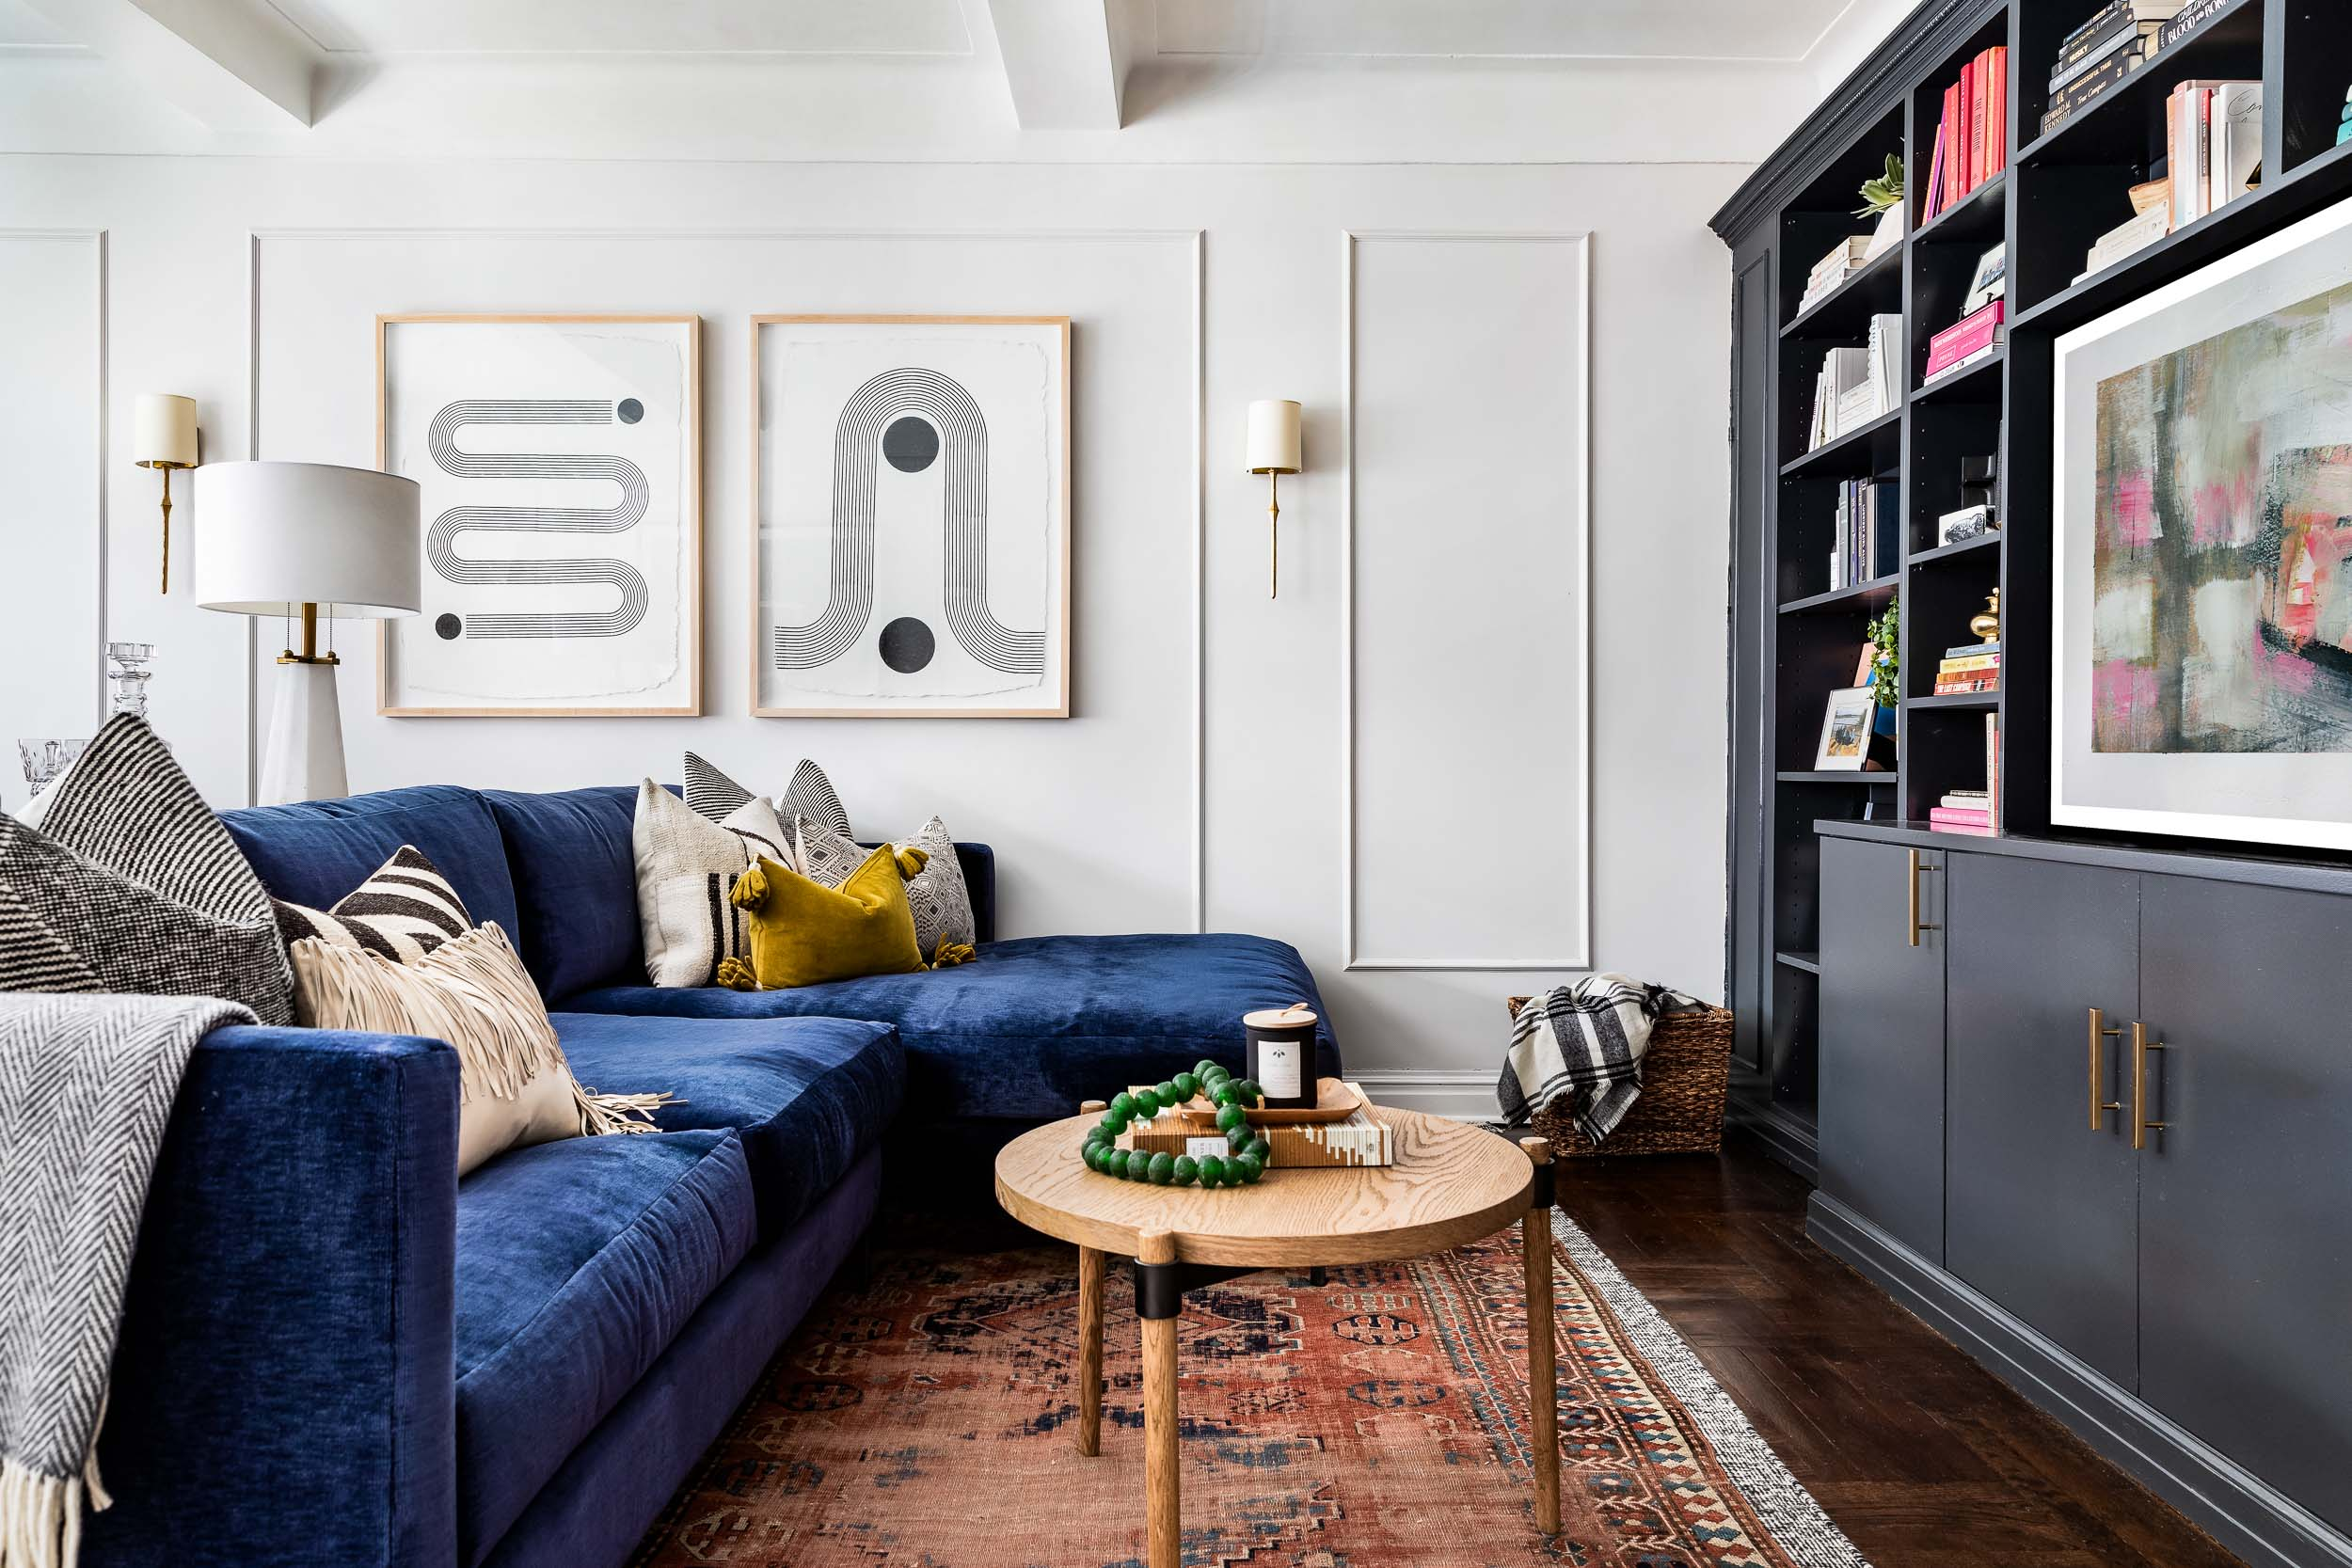 Interior design photography of an Upper East Site New York City